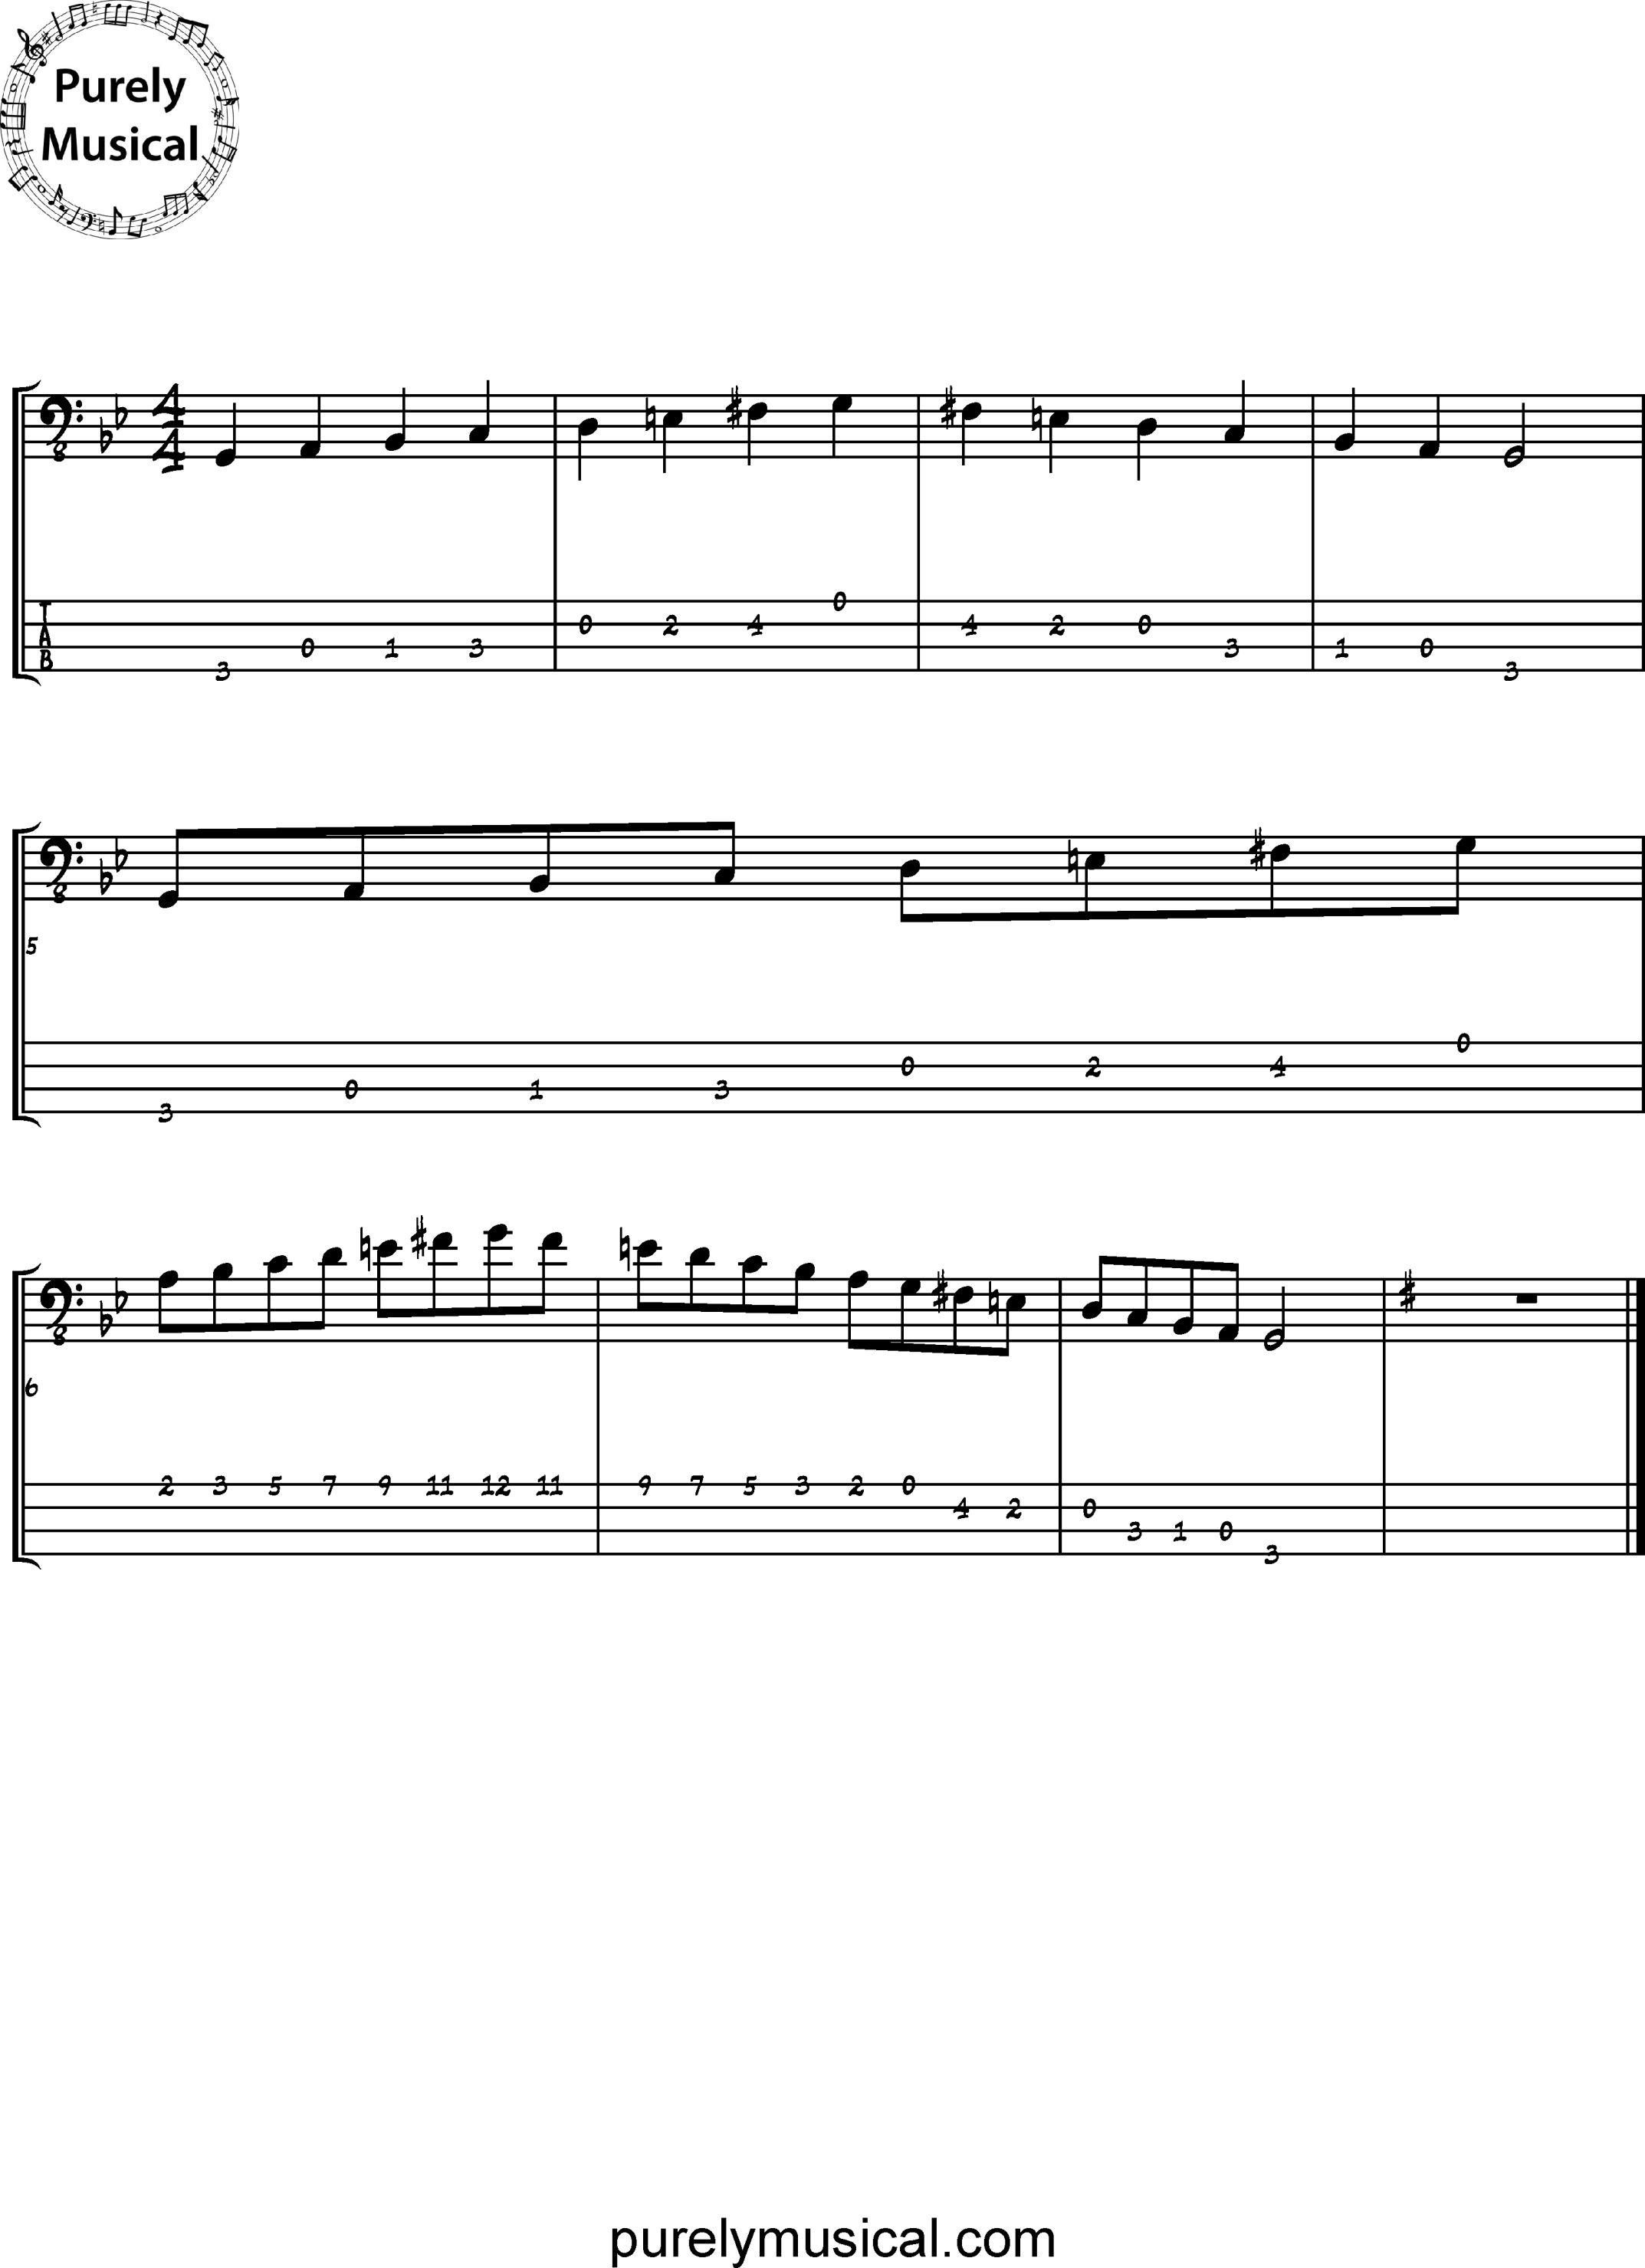 Beginner  Scale G Melodic Minor